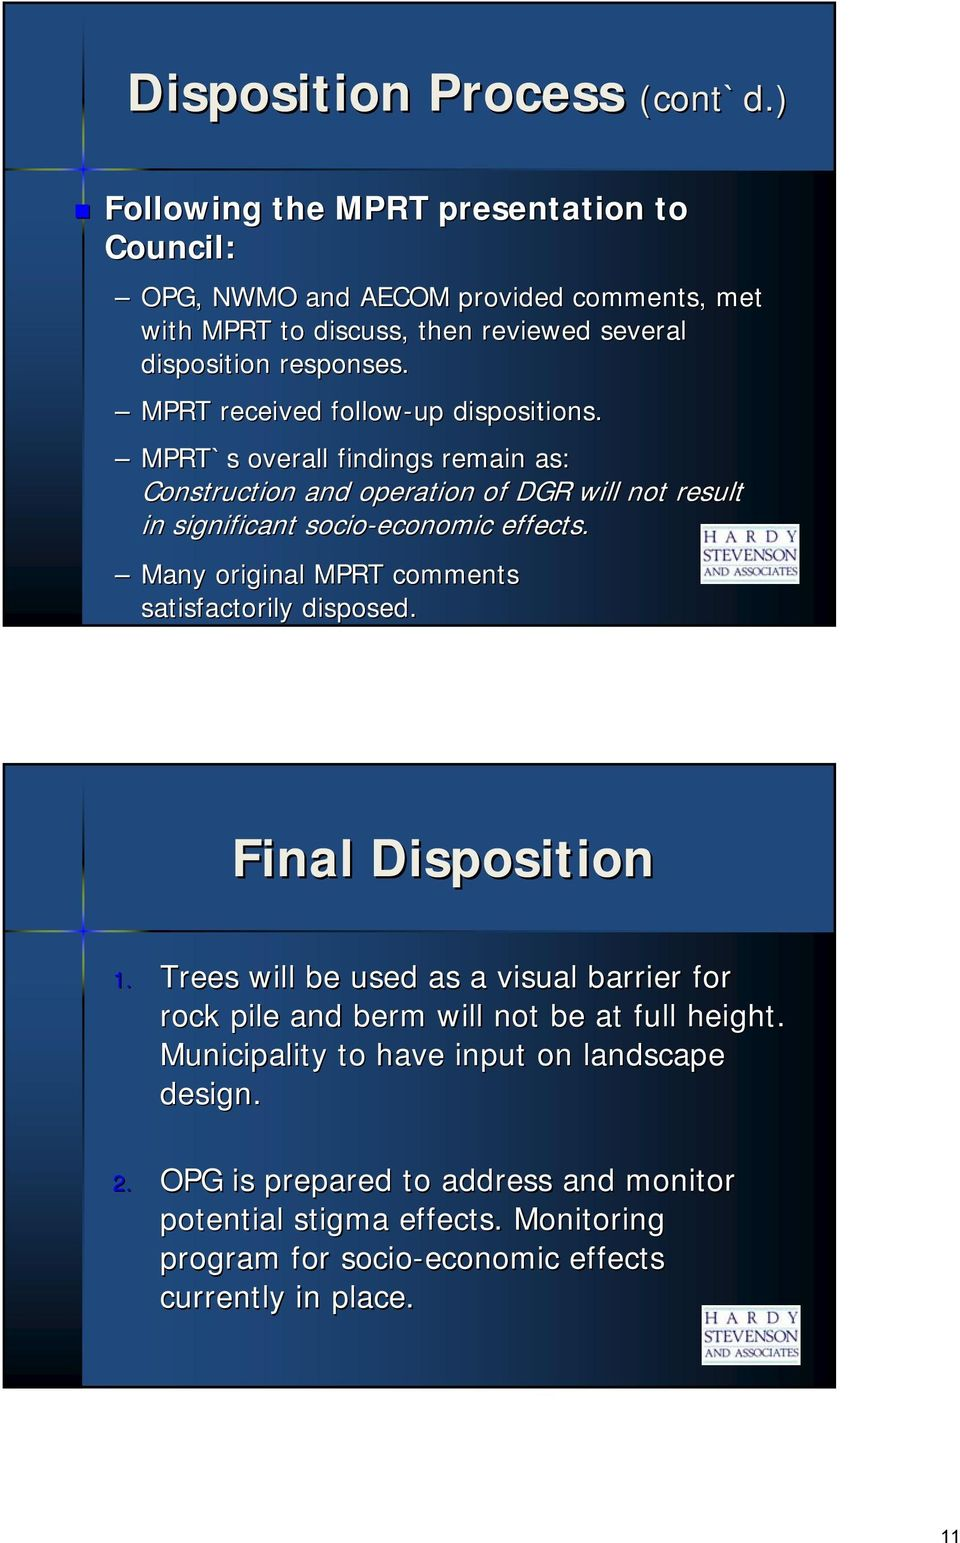 MPRT received follow-up dispositions. MPRT`s overall findings remain as: Construction and operation of DGR will not result in significant socio-economic effects.